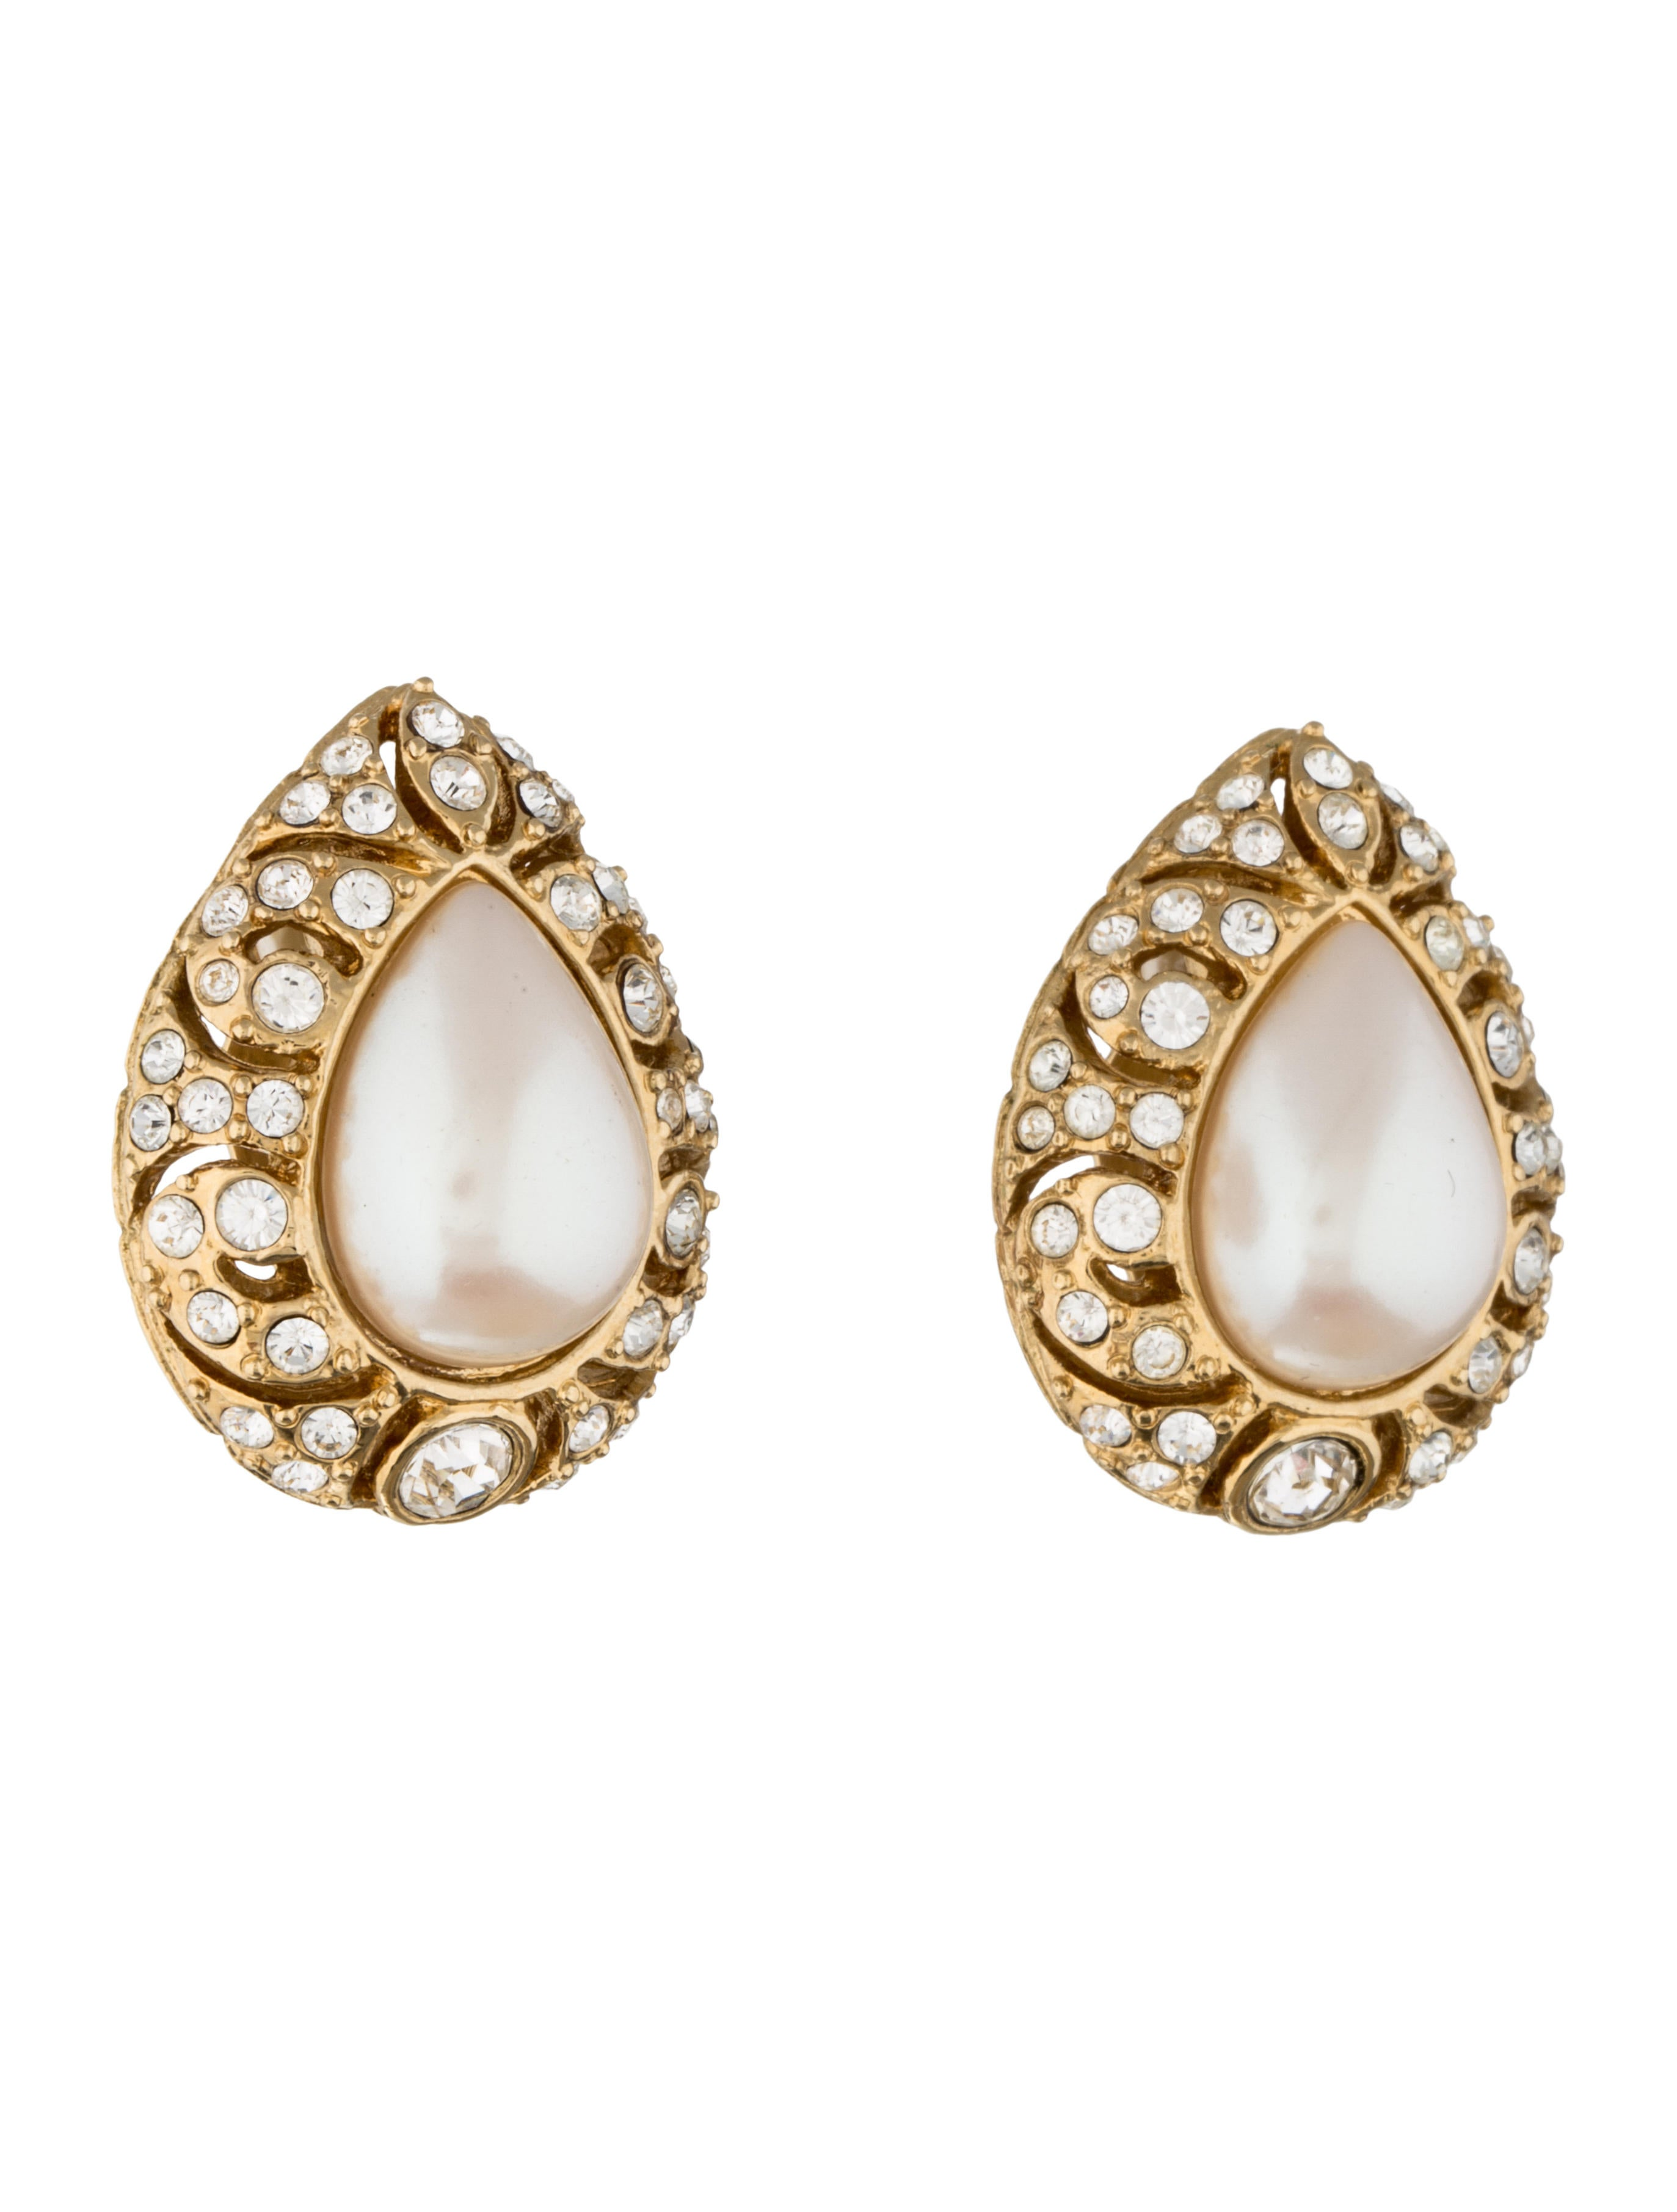 givenchy crystal faux pearl clip on earrings earrings. Black Bedroom Furniture Sets. Home Design Ideas